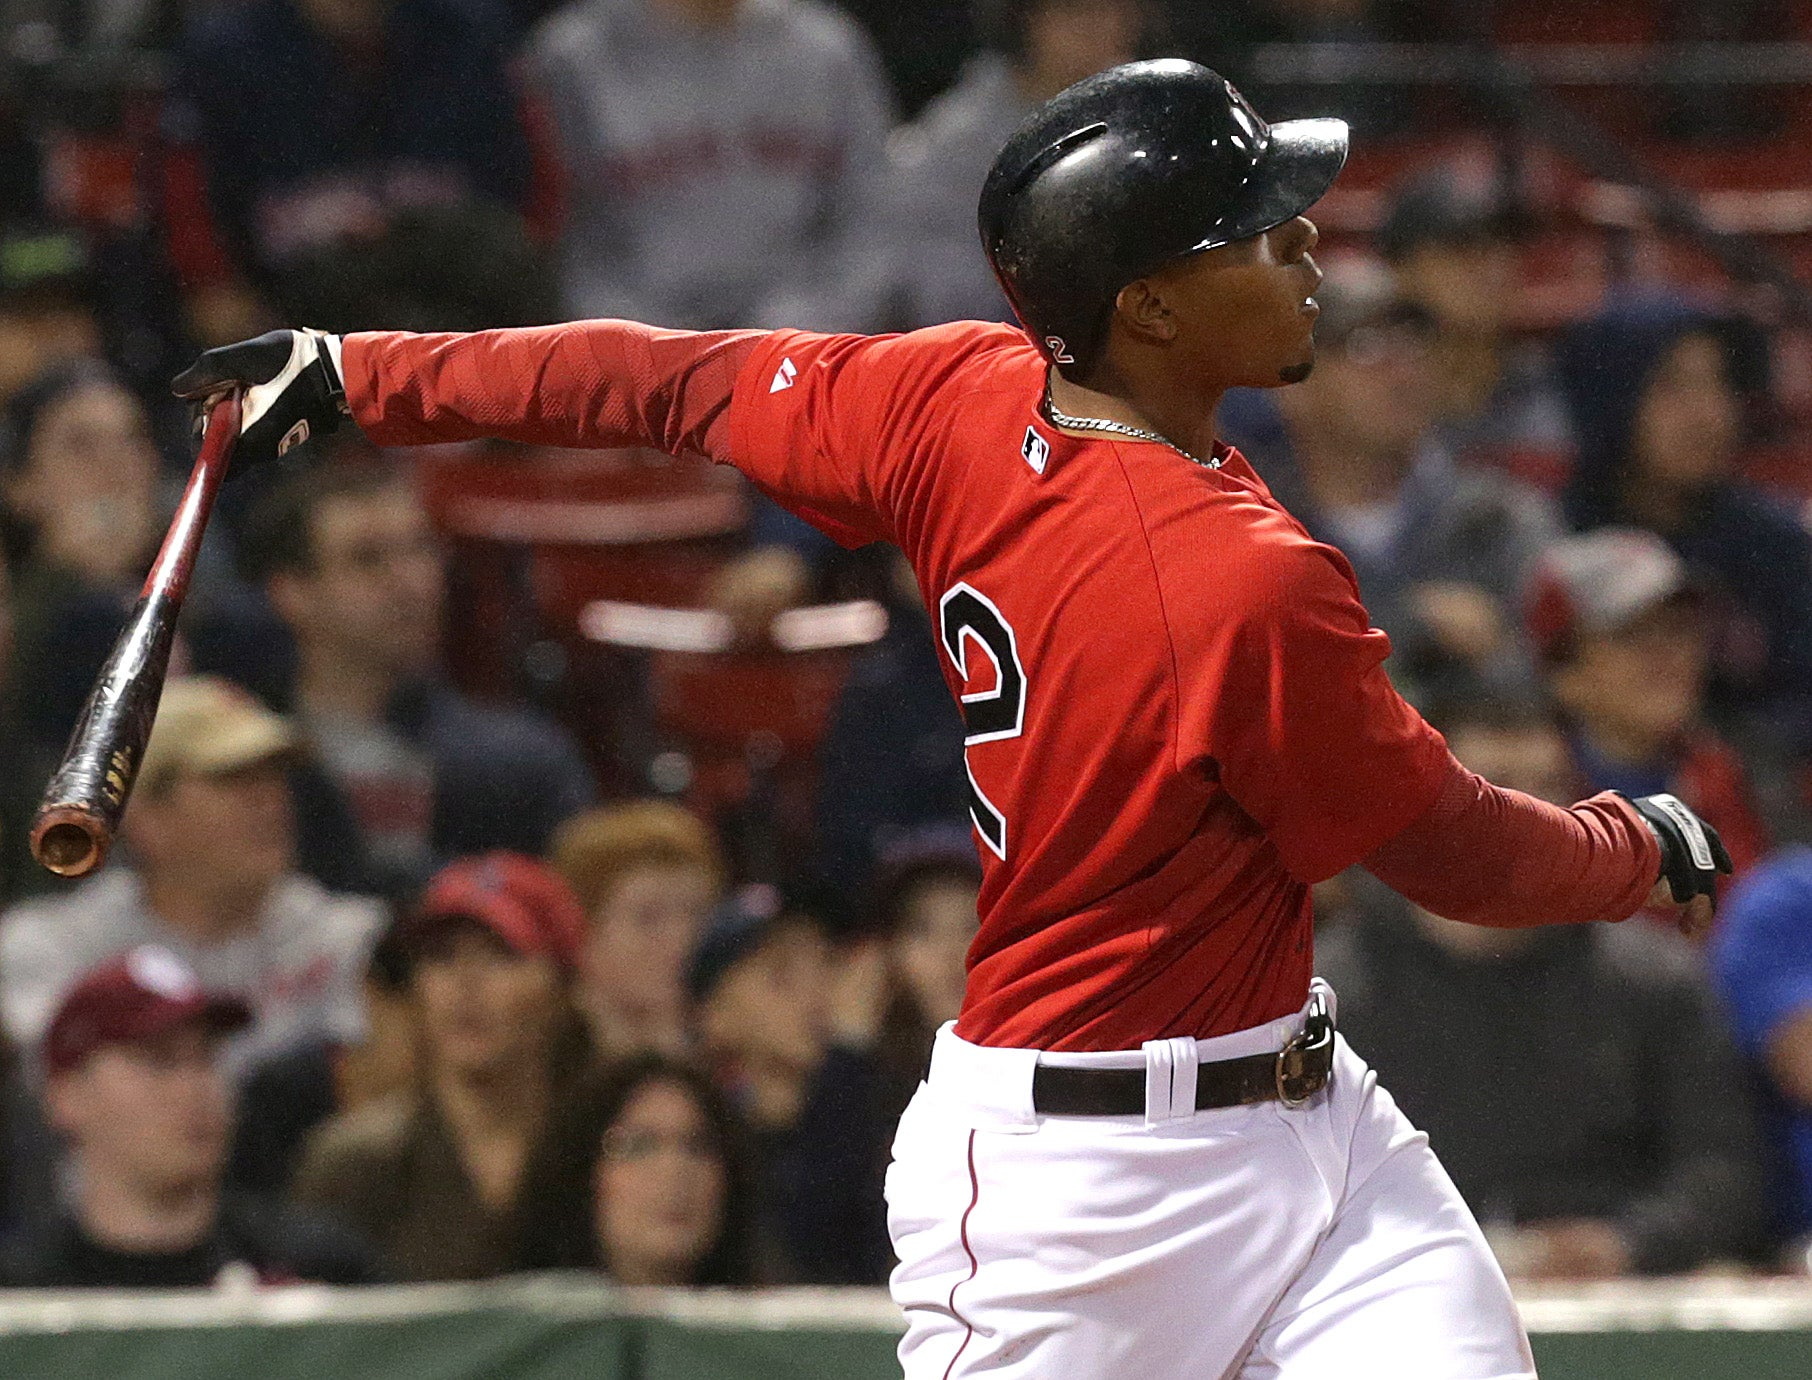 b6a3f5ee2 Red Sox Score Season-High 10 Runs in Rout of Tribe